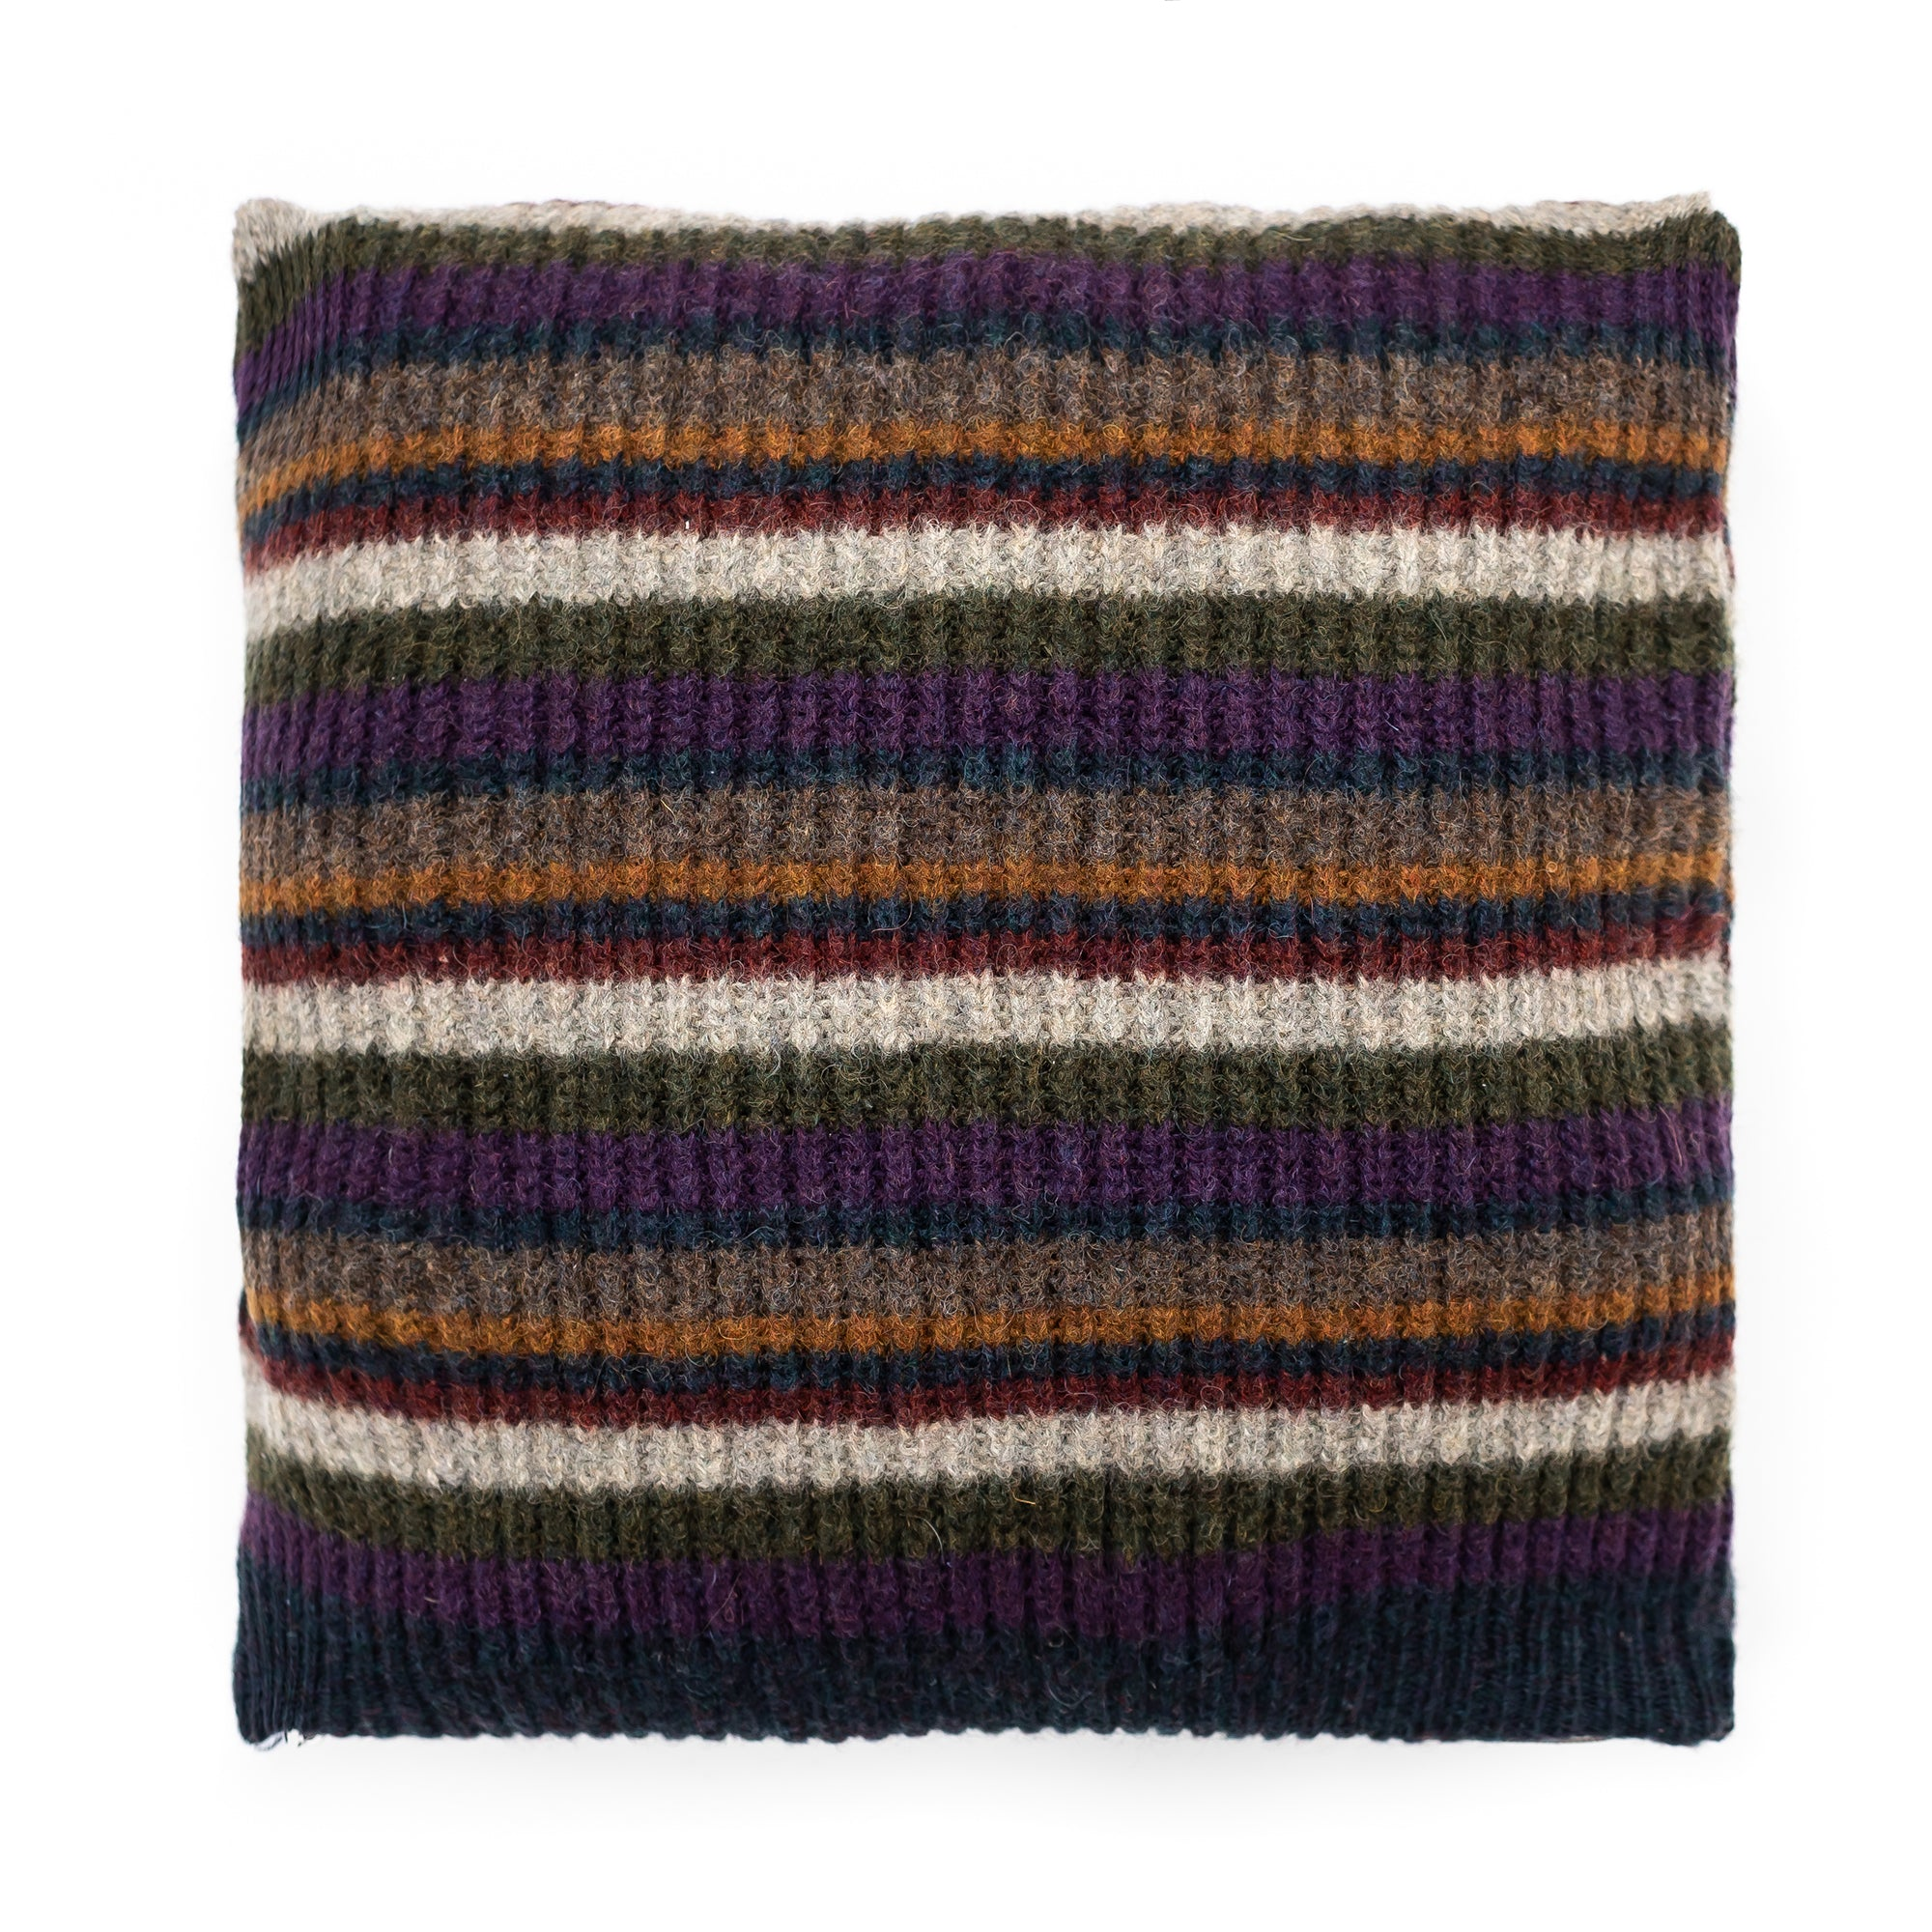 20x20 Striped Wool Pillow cover